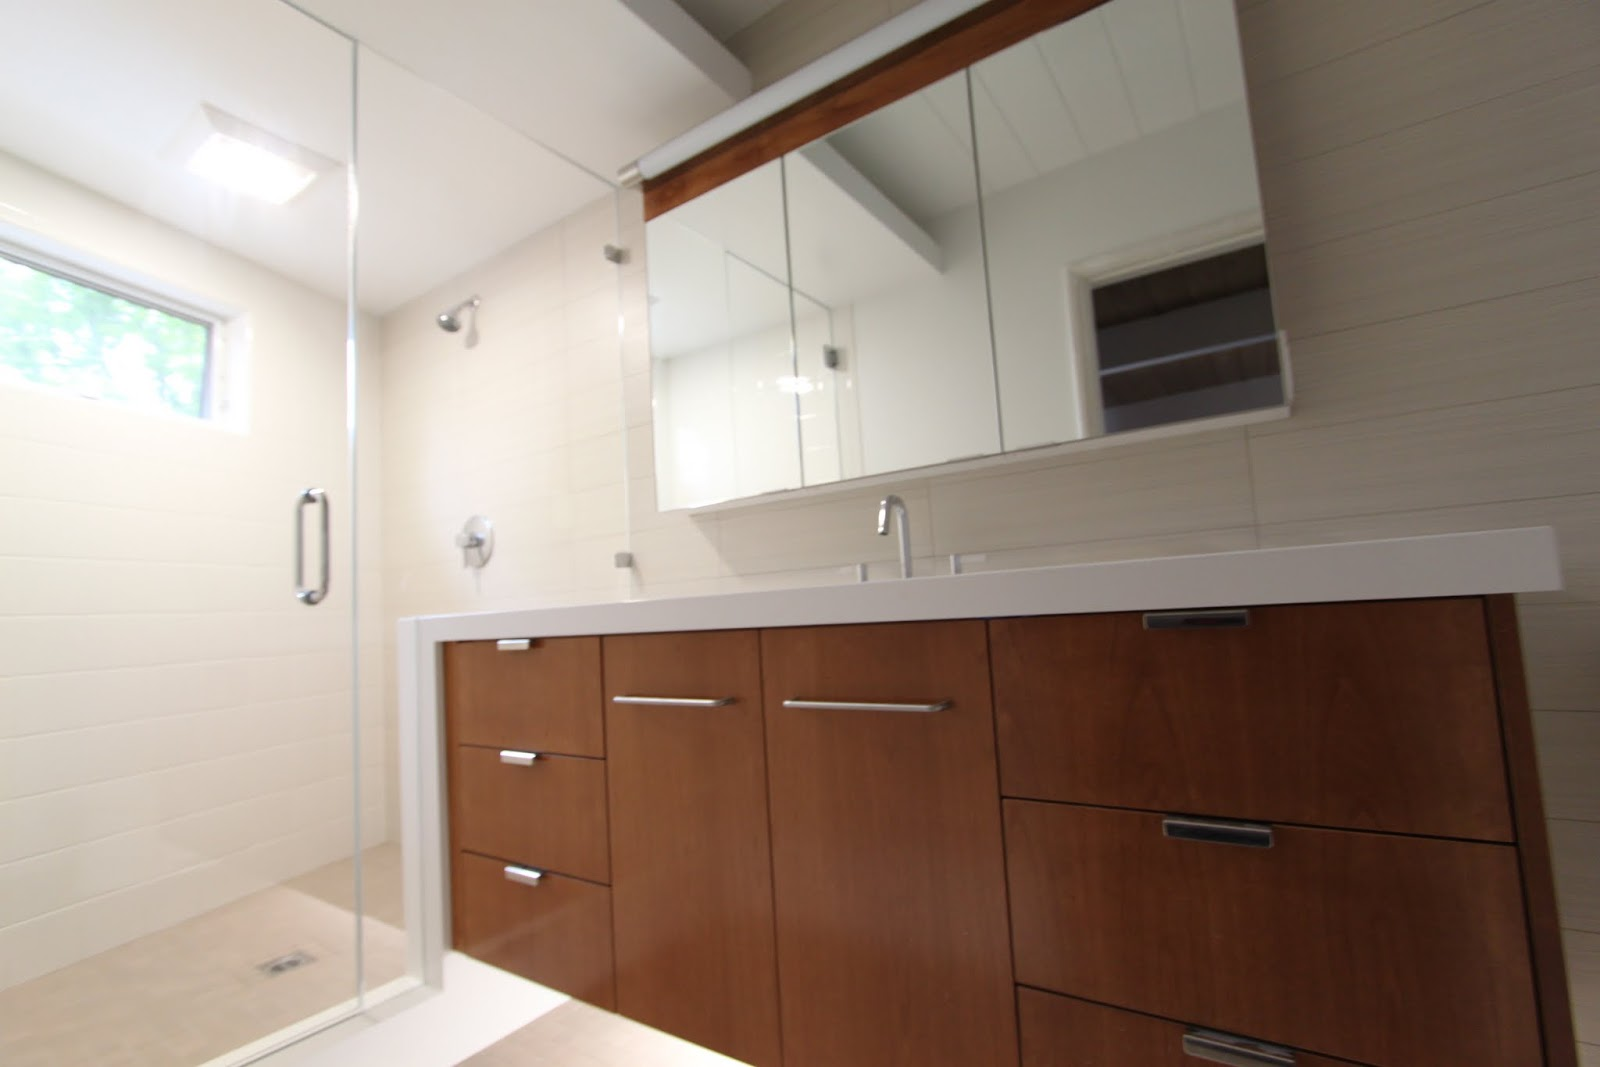 fabulous master shower and cabinet we have only one sink so we can have two banks of drawers storage is a premium in a mid century modern